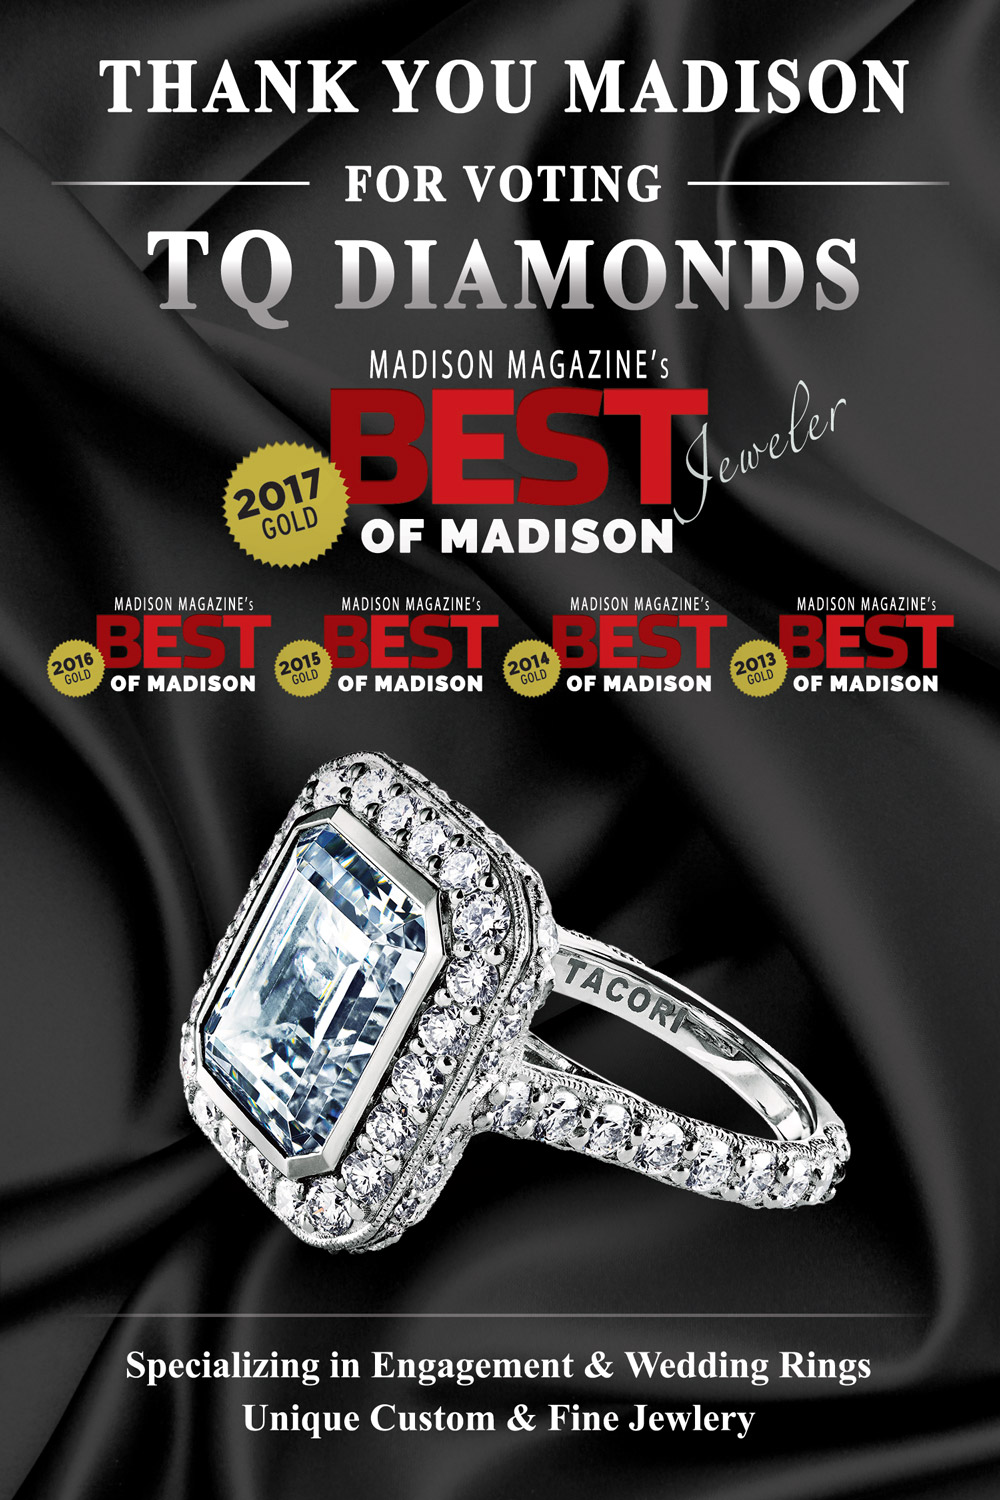 TQ Diamonds - Best Jeweler of Madison 2017